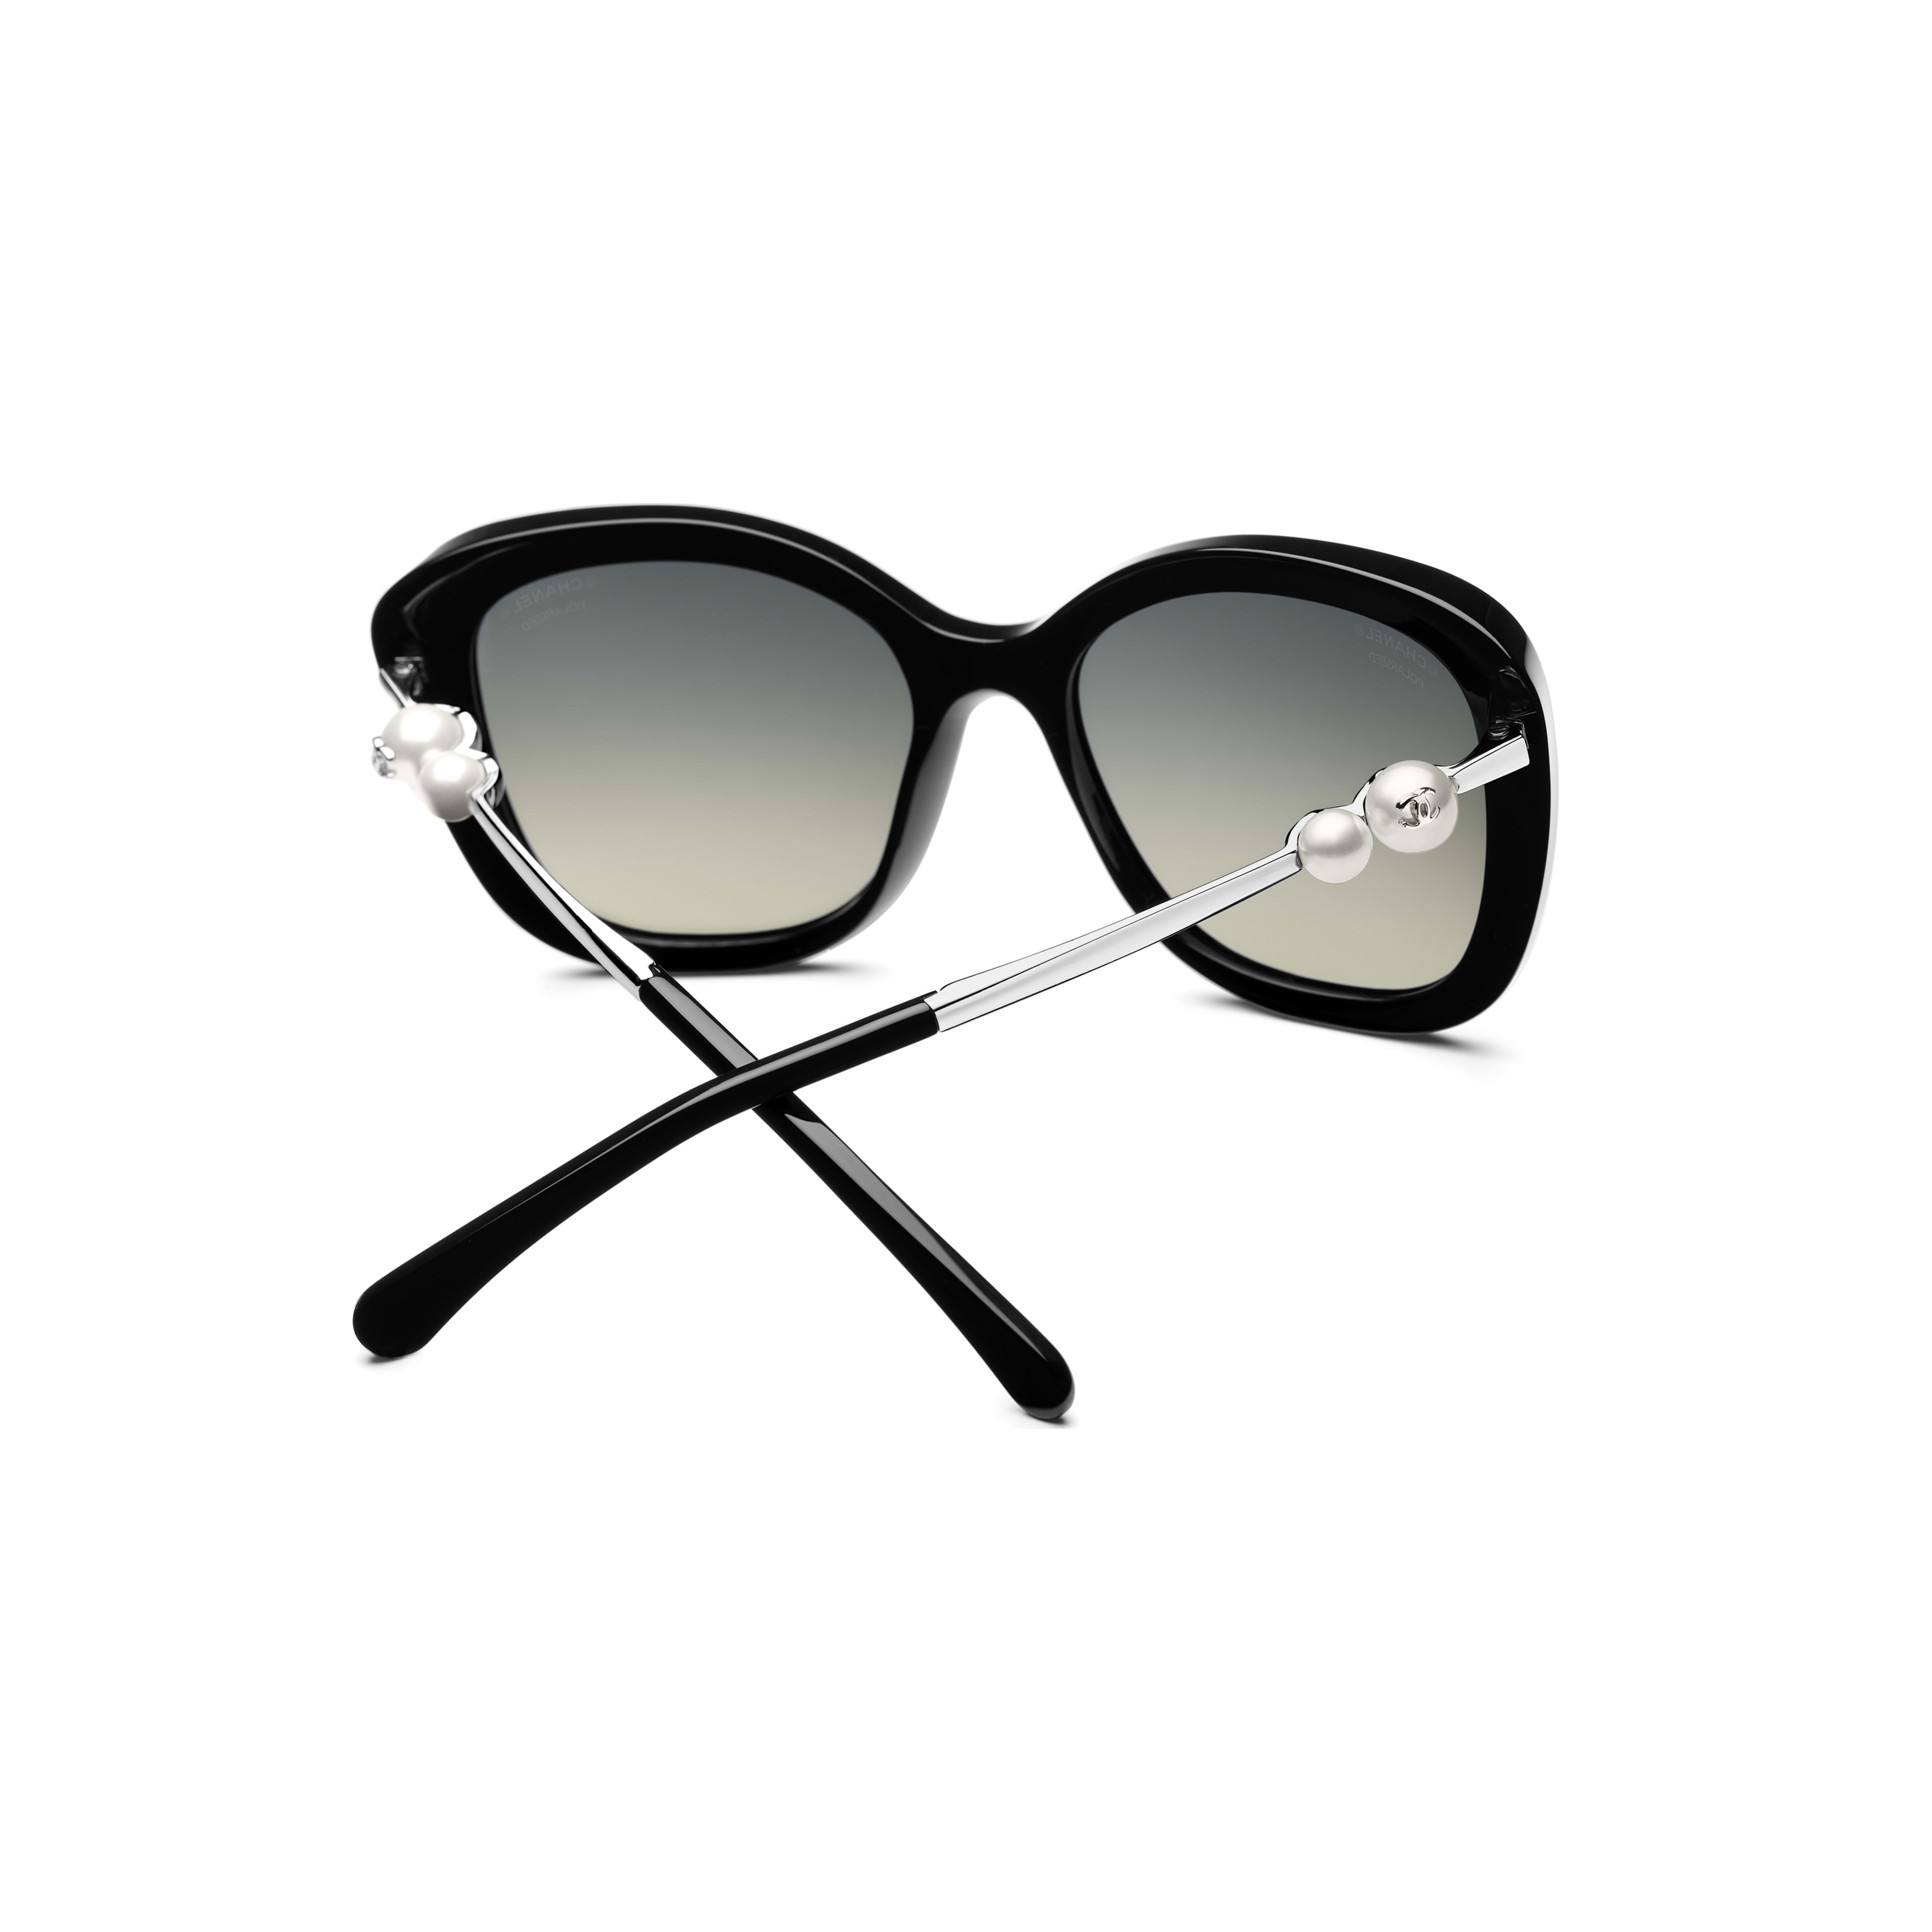 Square Sunglasses - Black - Acetate & Imitation Pearls - CHANEL - Extra view - see standard sized version